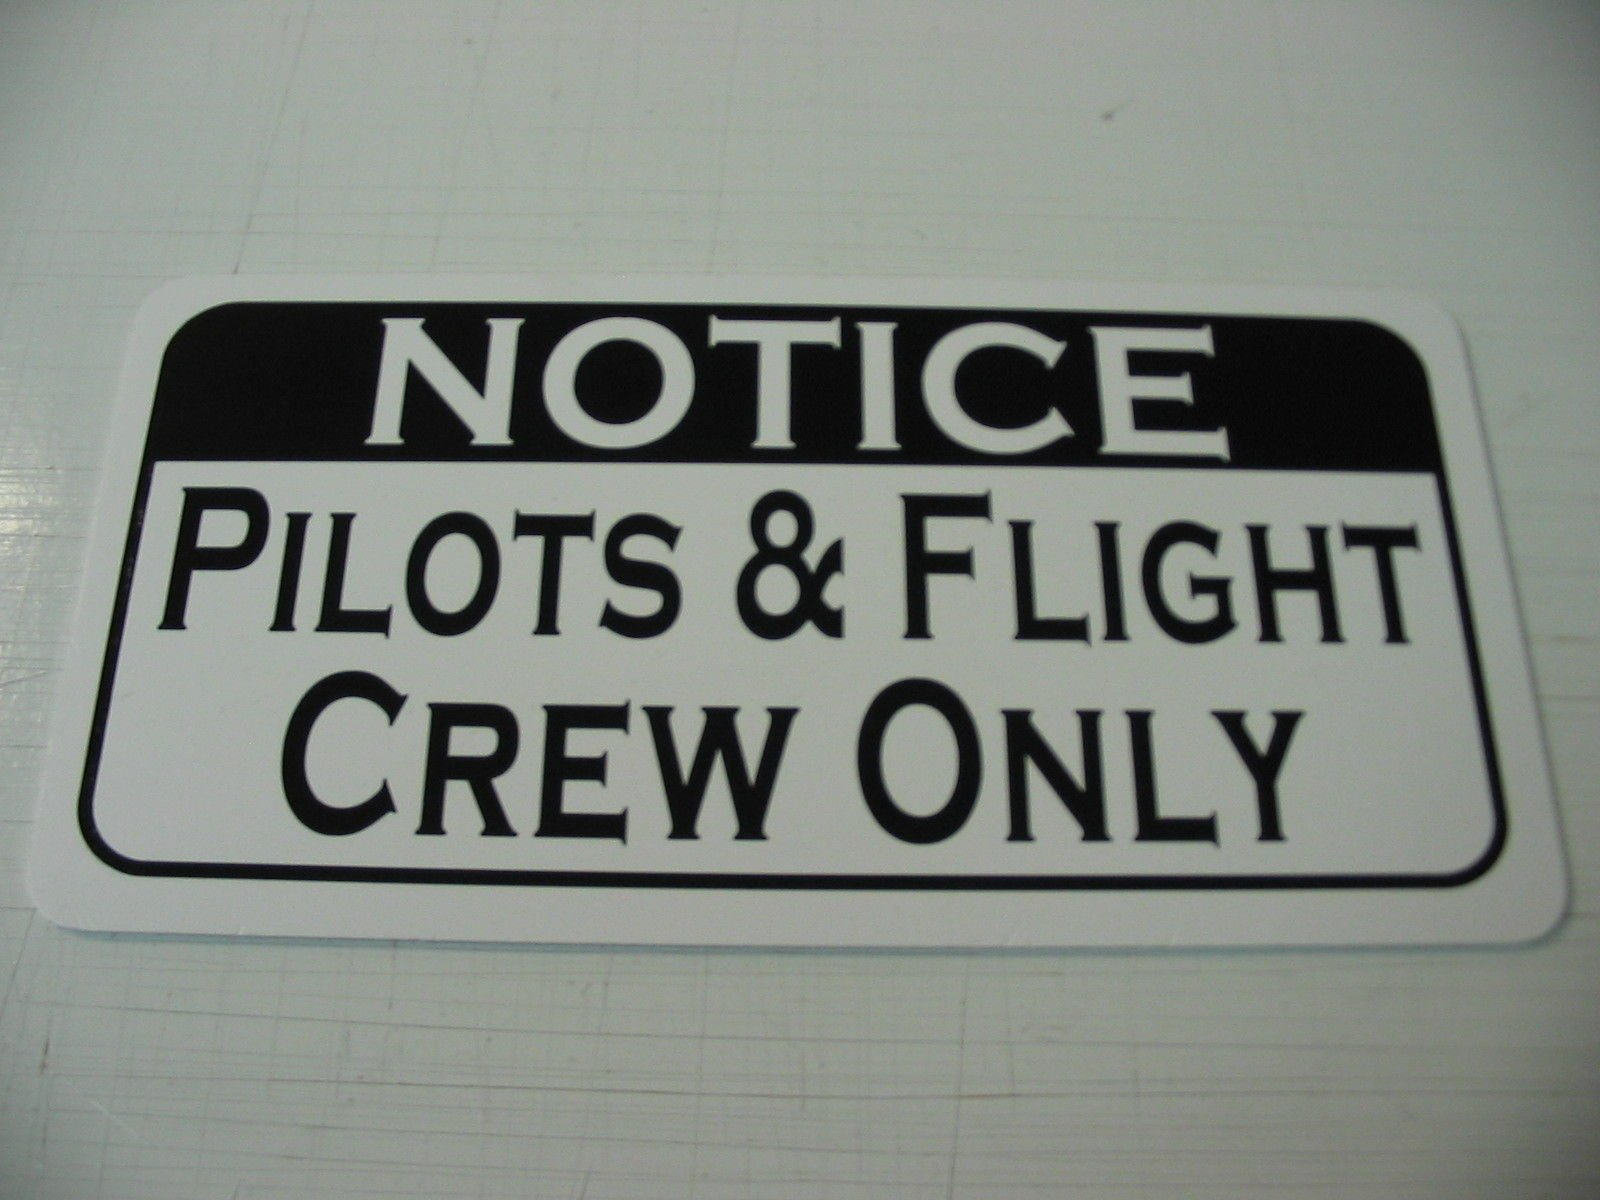 PILOTS & FLIGHT CREW ONLY Vintage Retro Art Deco Style Metal Sign for Airport Air Plane Hangar Hotel Motel Bar or Restaurant Highway Motel HWY Gas Service Station